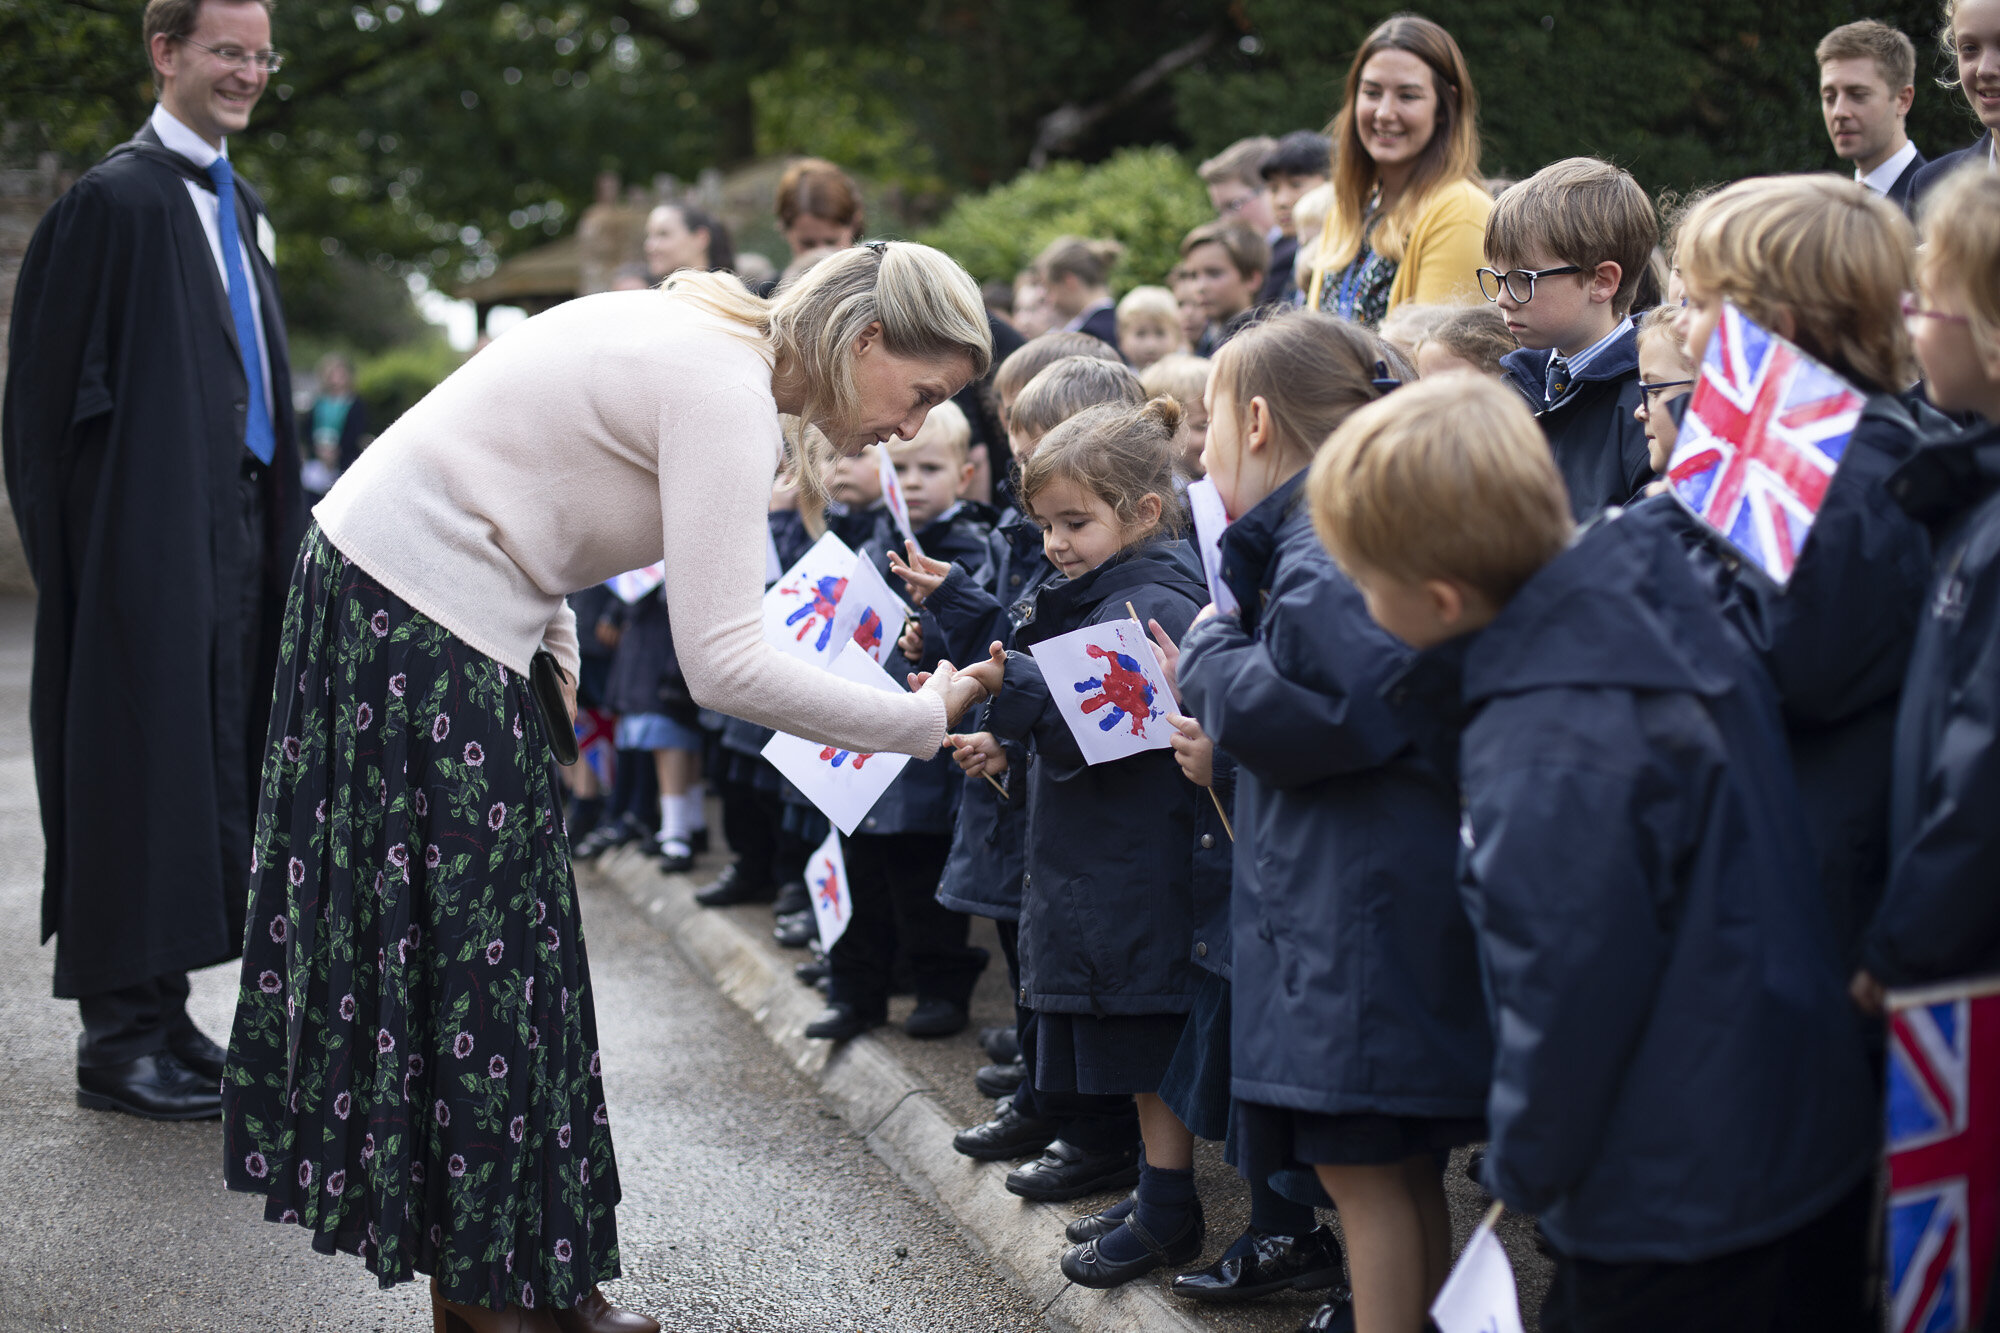 The Countess of Wessex visits Wells Cathedral Chorister Trust - September 2019 3.jpg